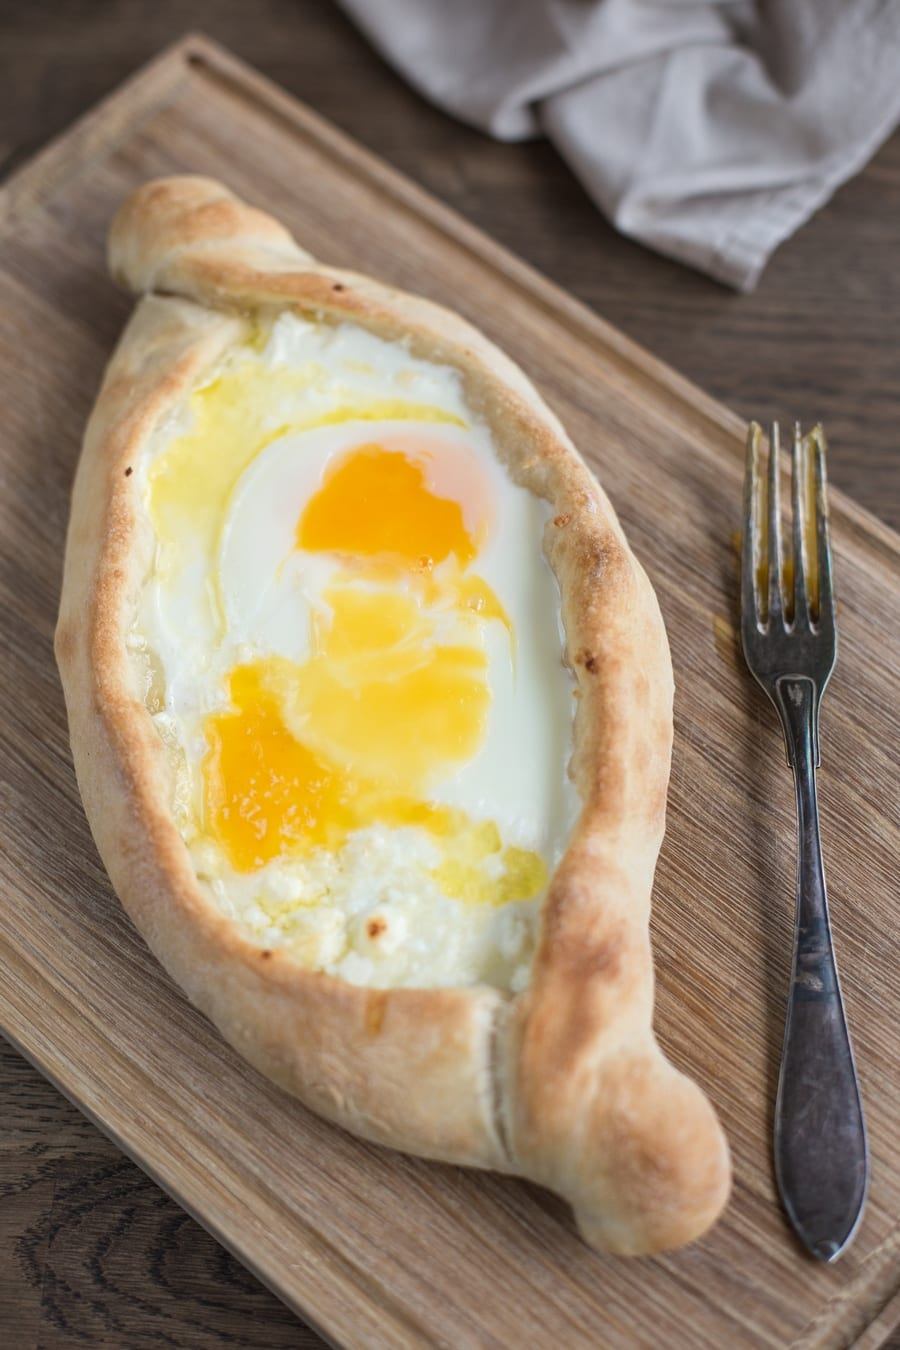 Sourdough khachapuri adjaruli on wooden board.